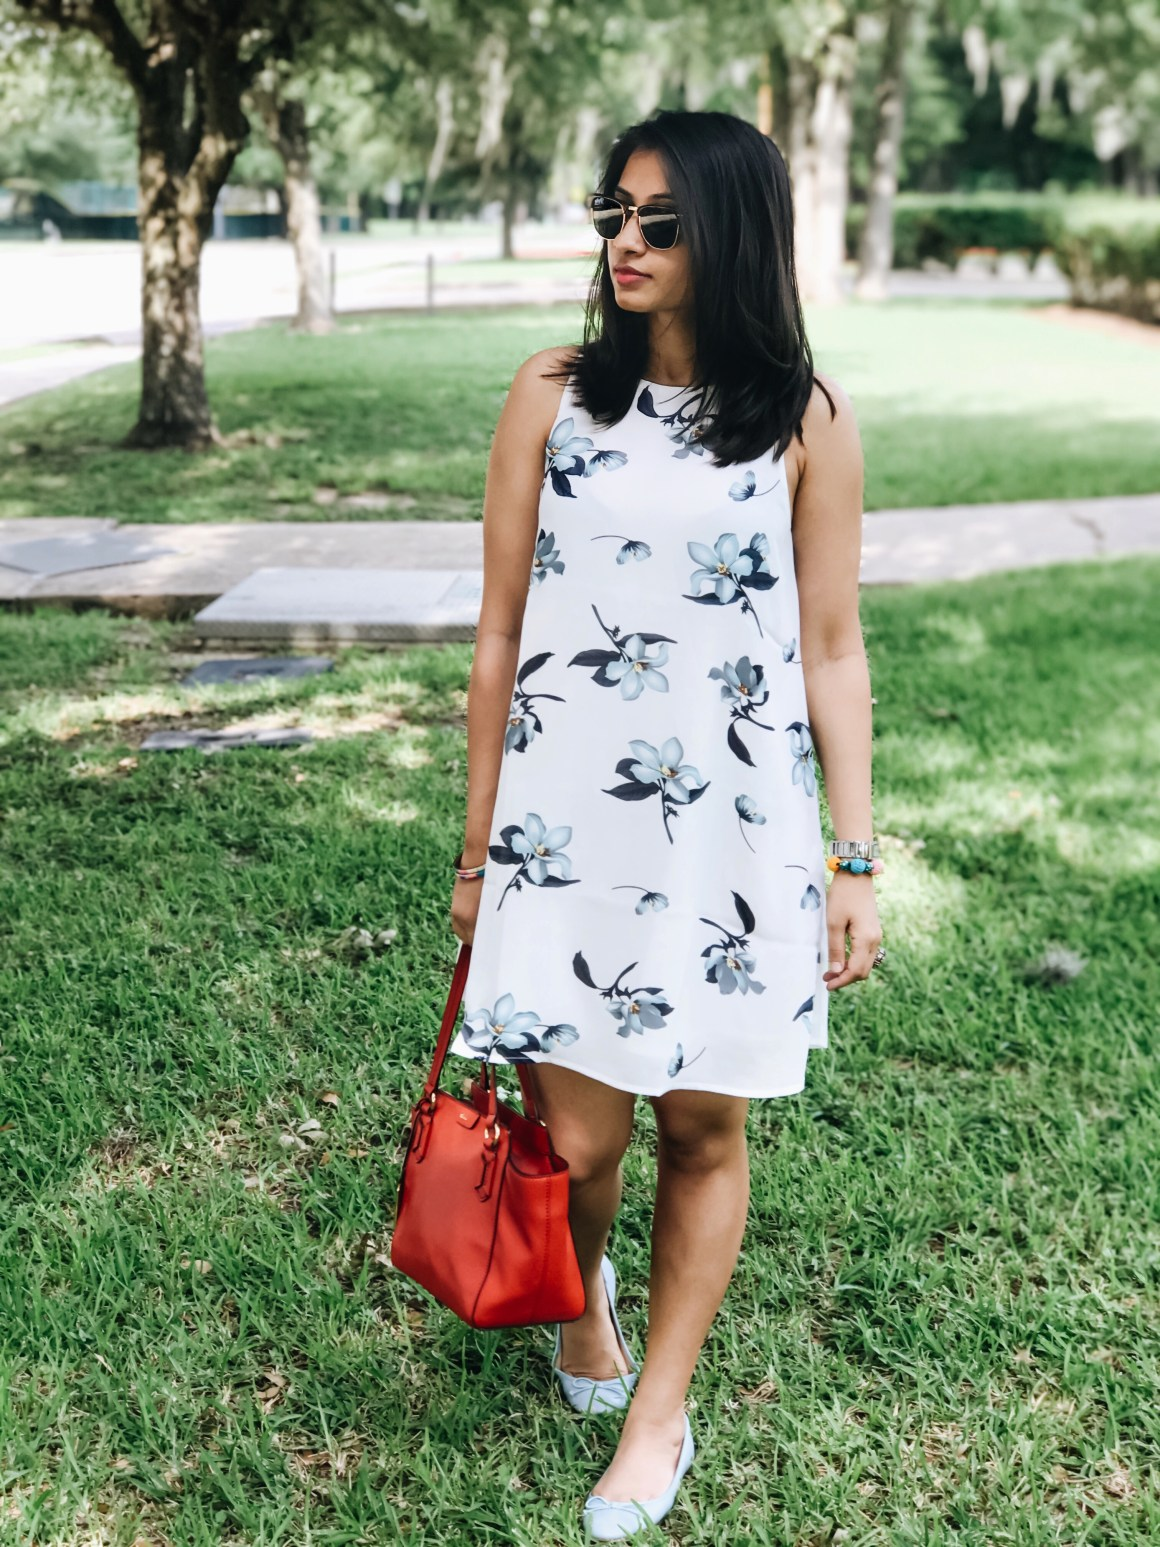 Floral Summer Sundress by Romwe, Ralph Lauren bag